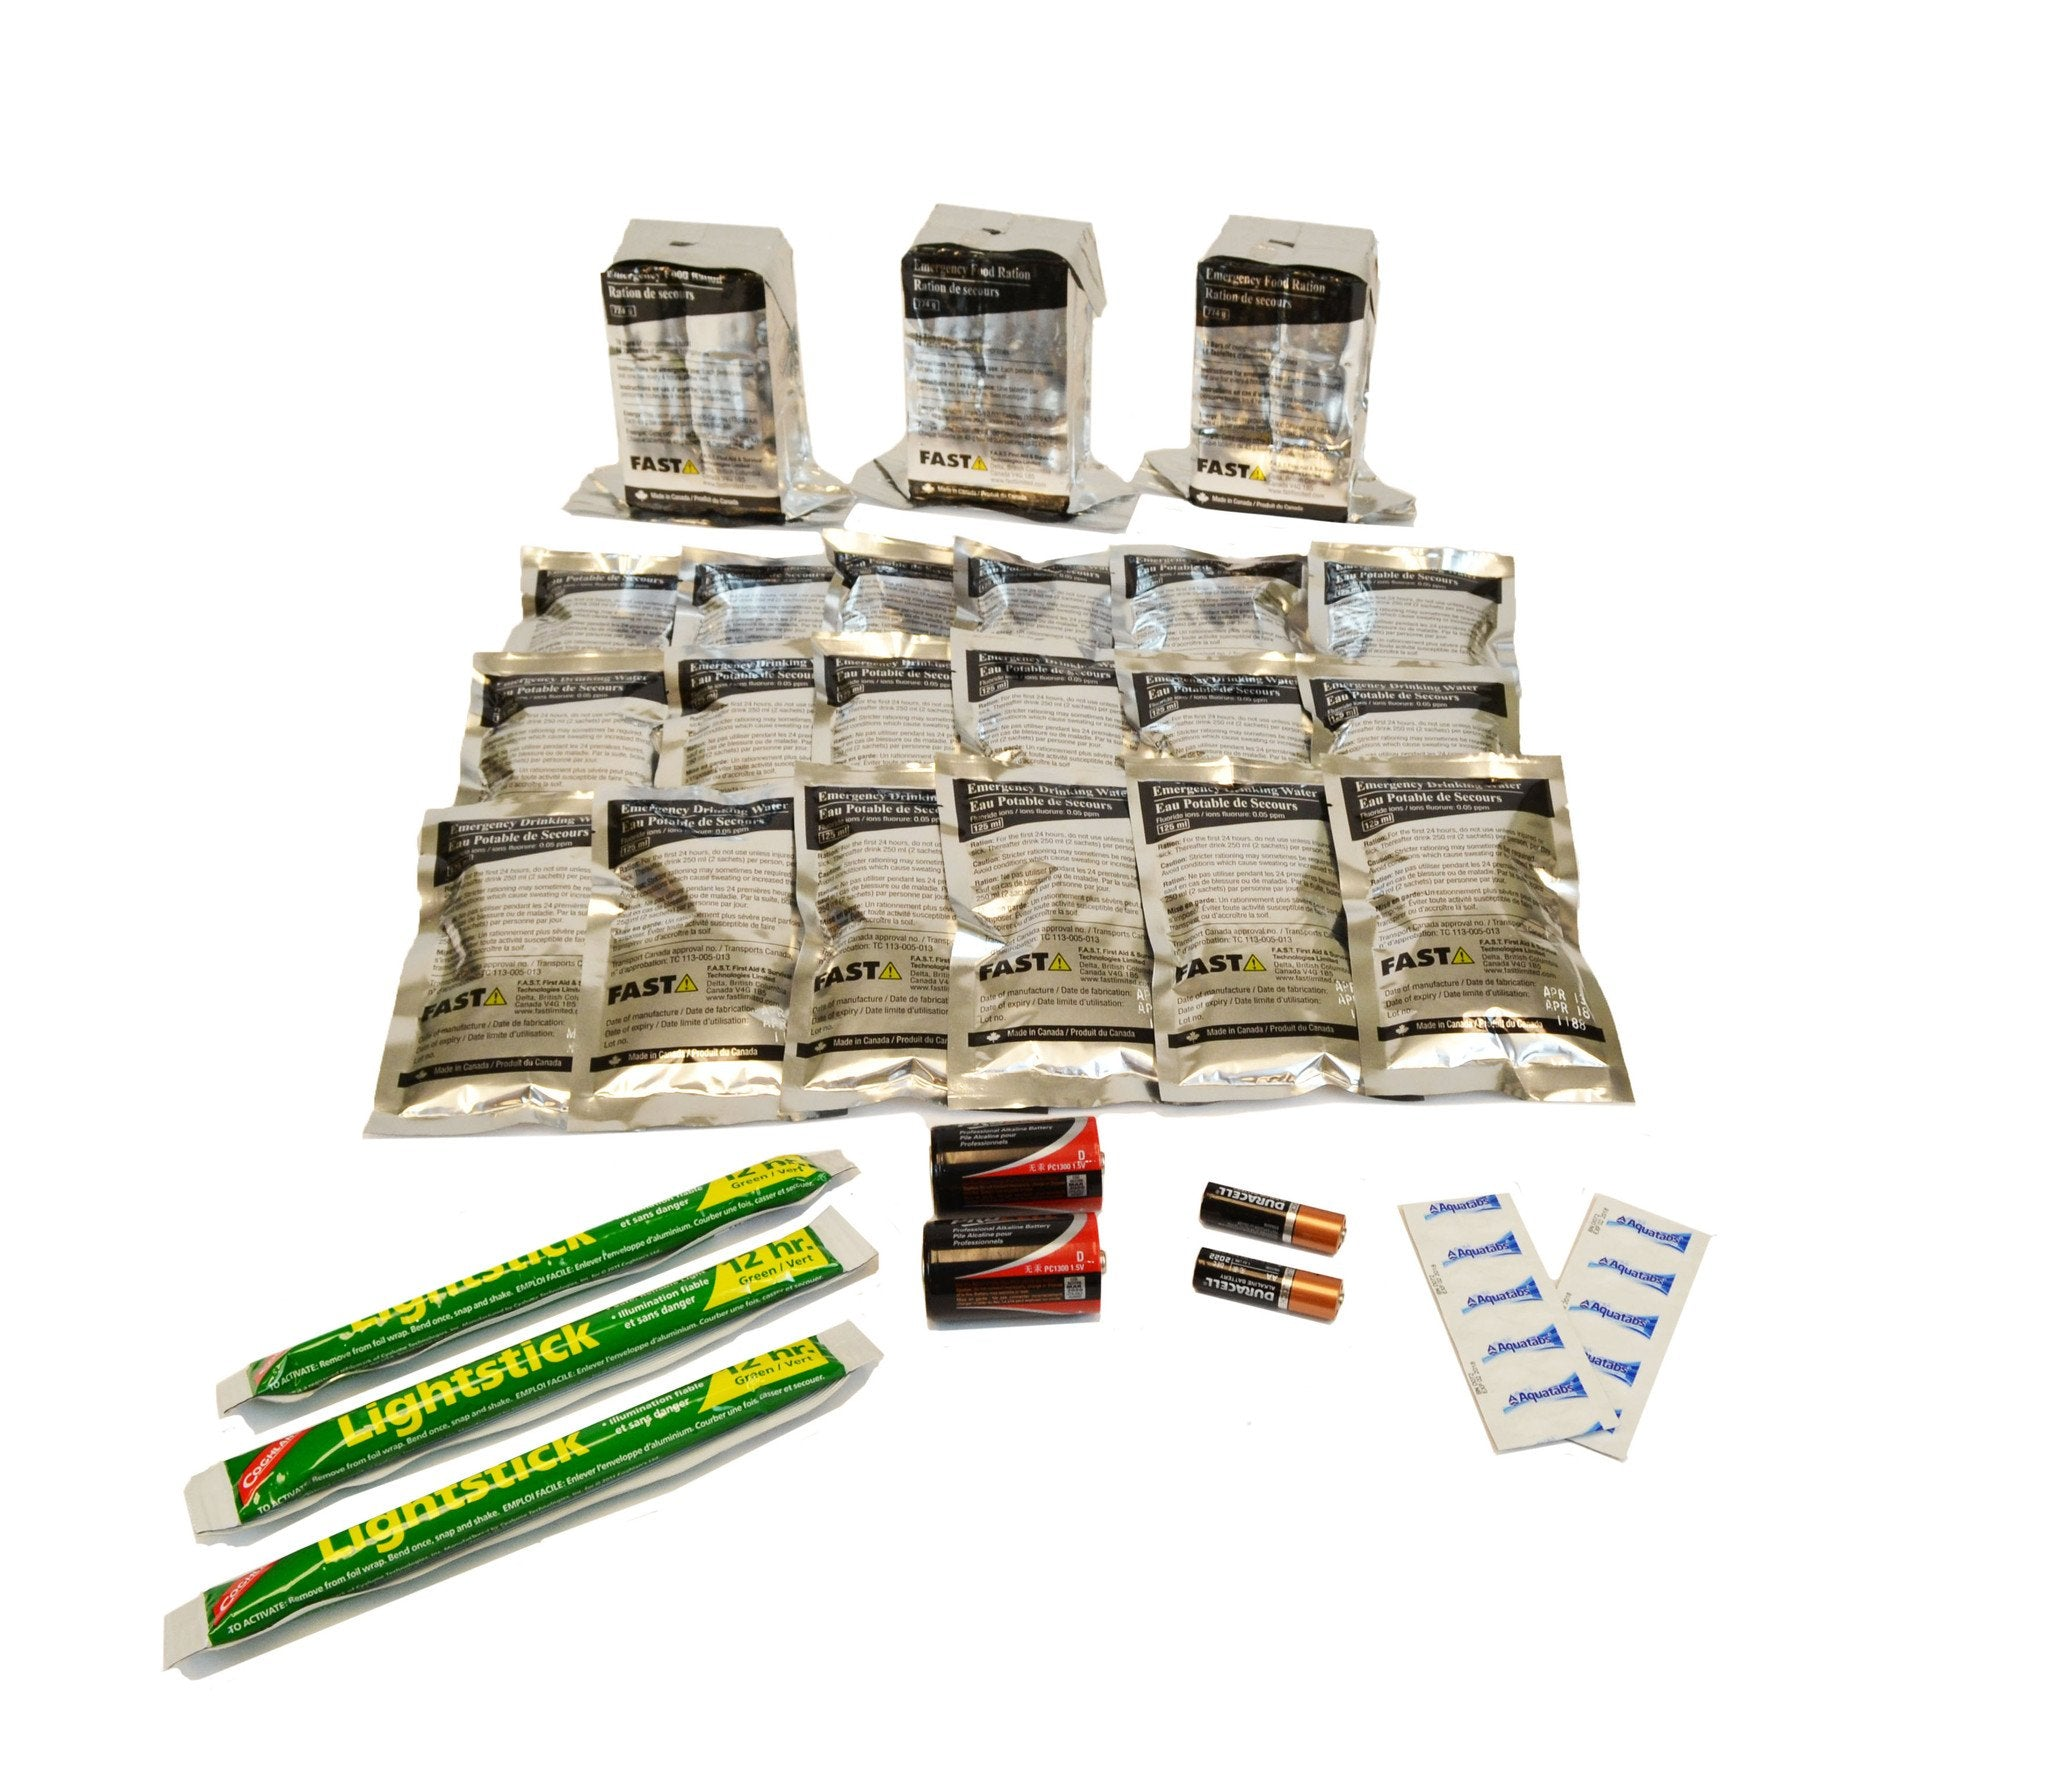 3 Person | 72 Hour Emergency Survival Replacement Supplies Kit | Emergency Preparedness